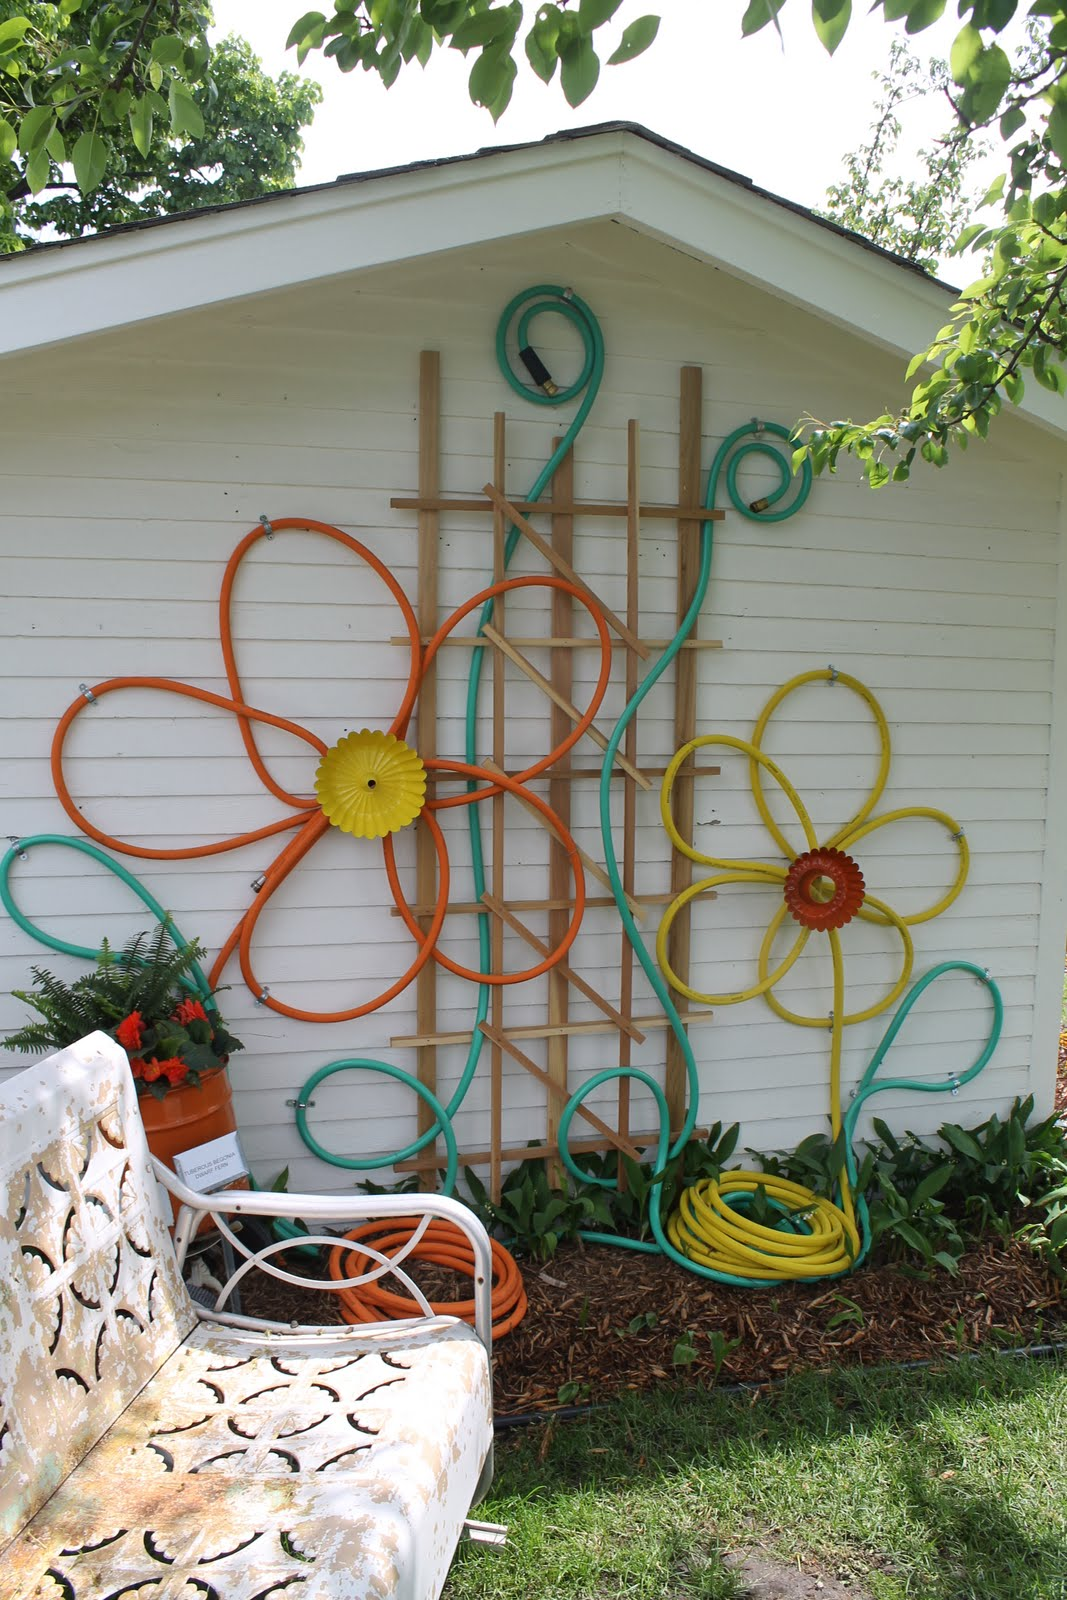 How to beautify your house outdoor wall dcor ideas make flowers from hoses for outdoor house decor solutioingenieria